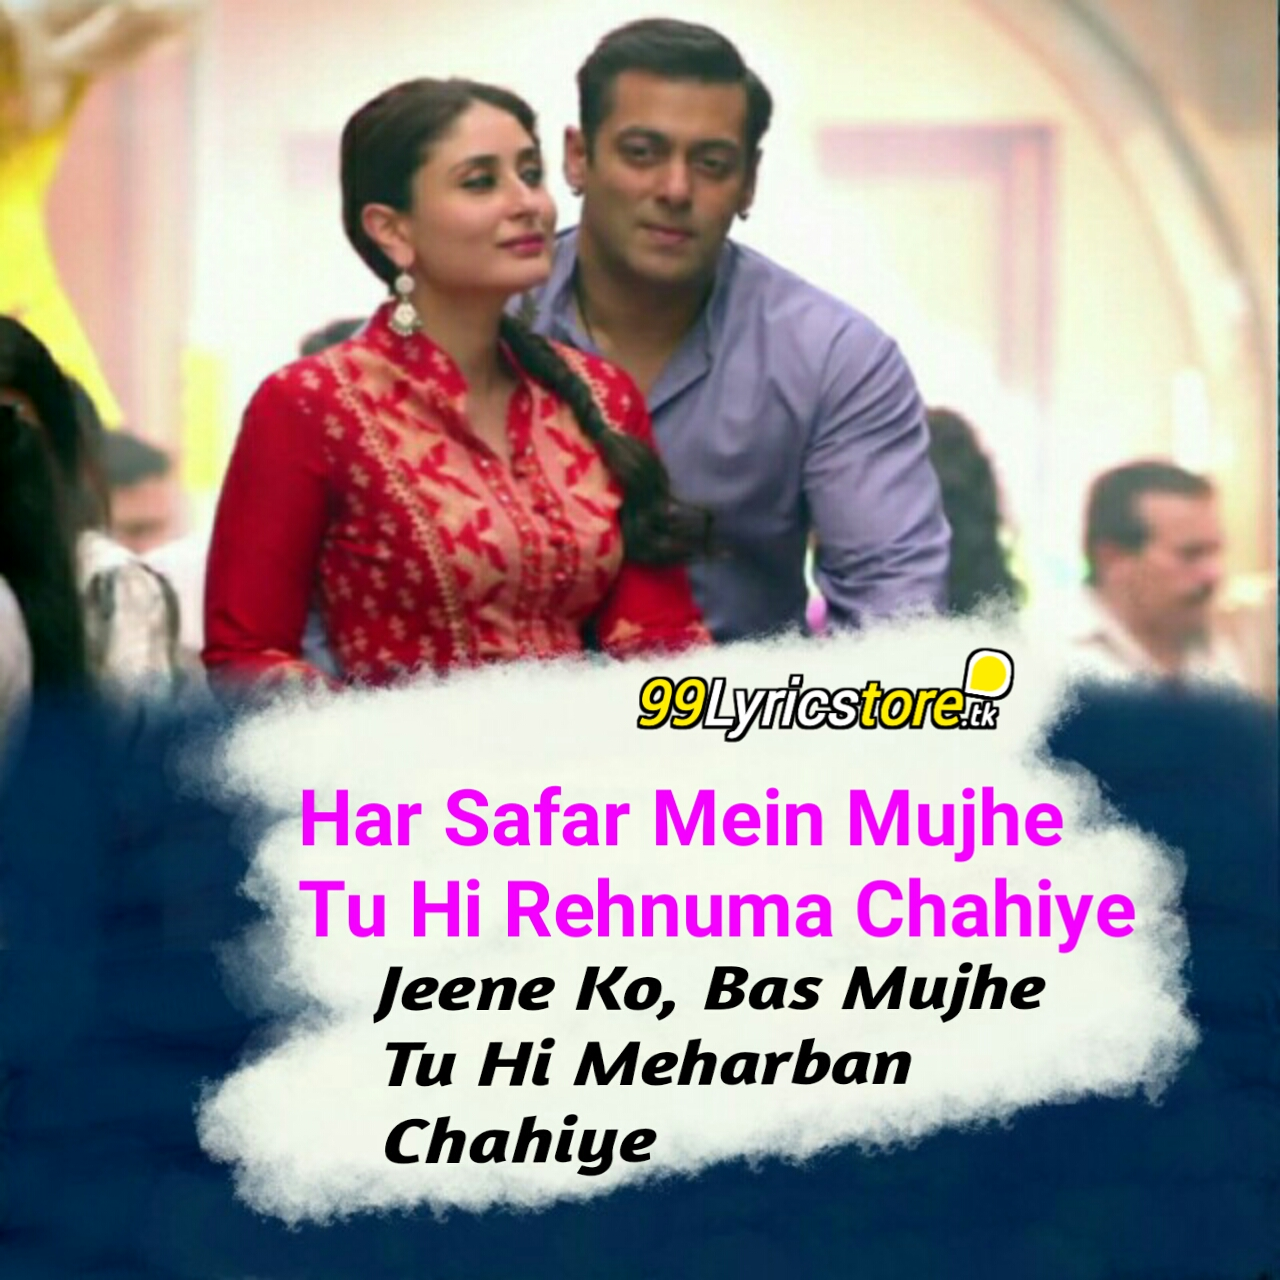 Salman Khan Song Lyrics, Kareena Kapoor Song Lyrics, Atif Aslam hit Song Lyrics, Bajrangi bhaijaan Song Lyrics, Hindi Bollywood Songs Lyrics,